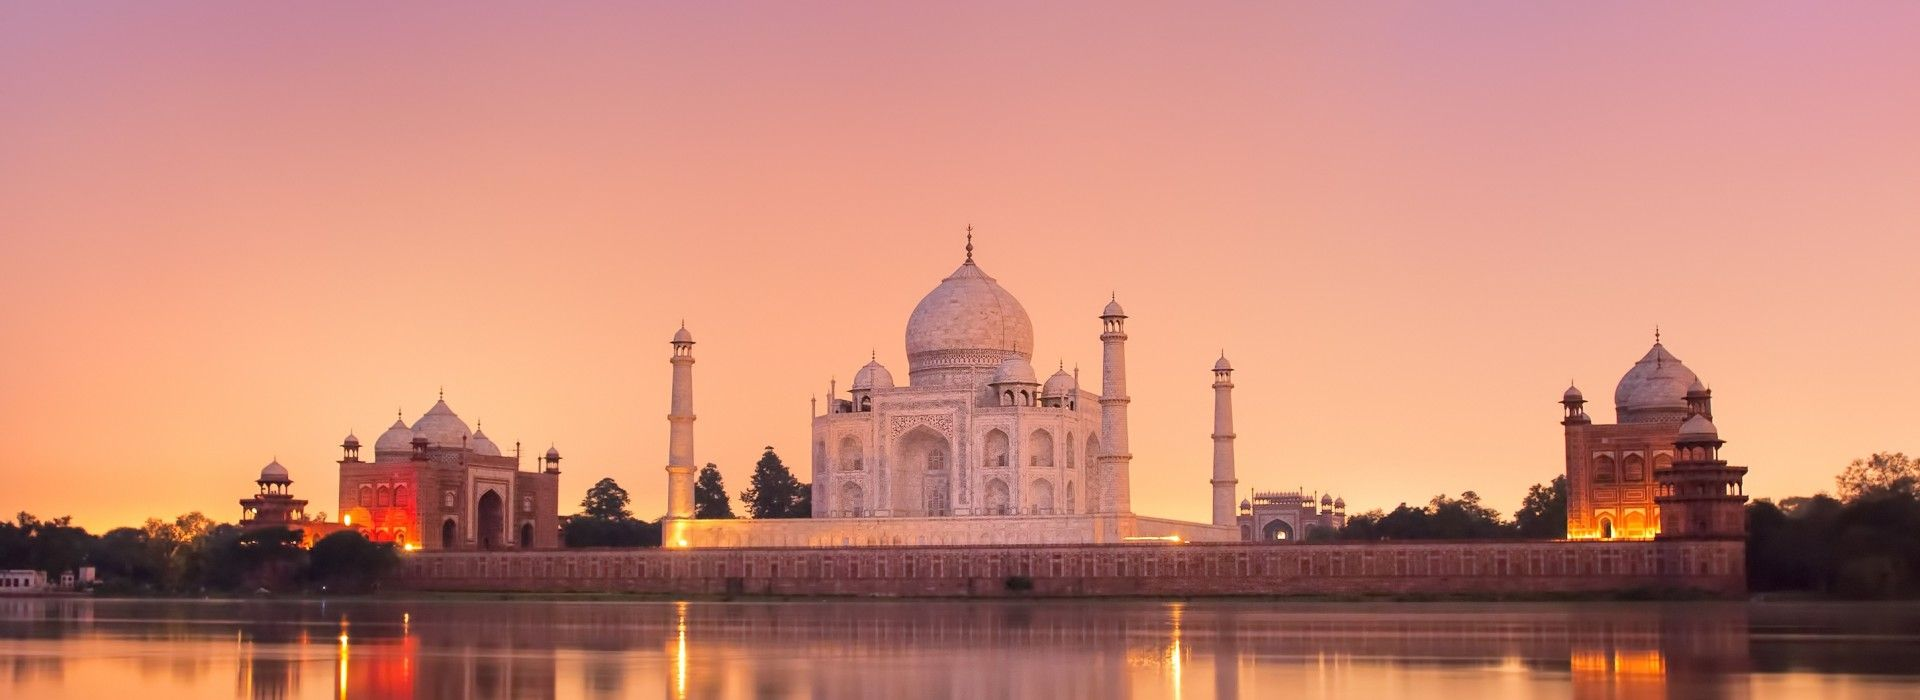 Sightseeing, attractions, culture and history Tours in Bangalore